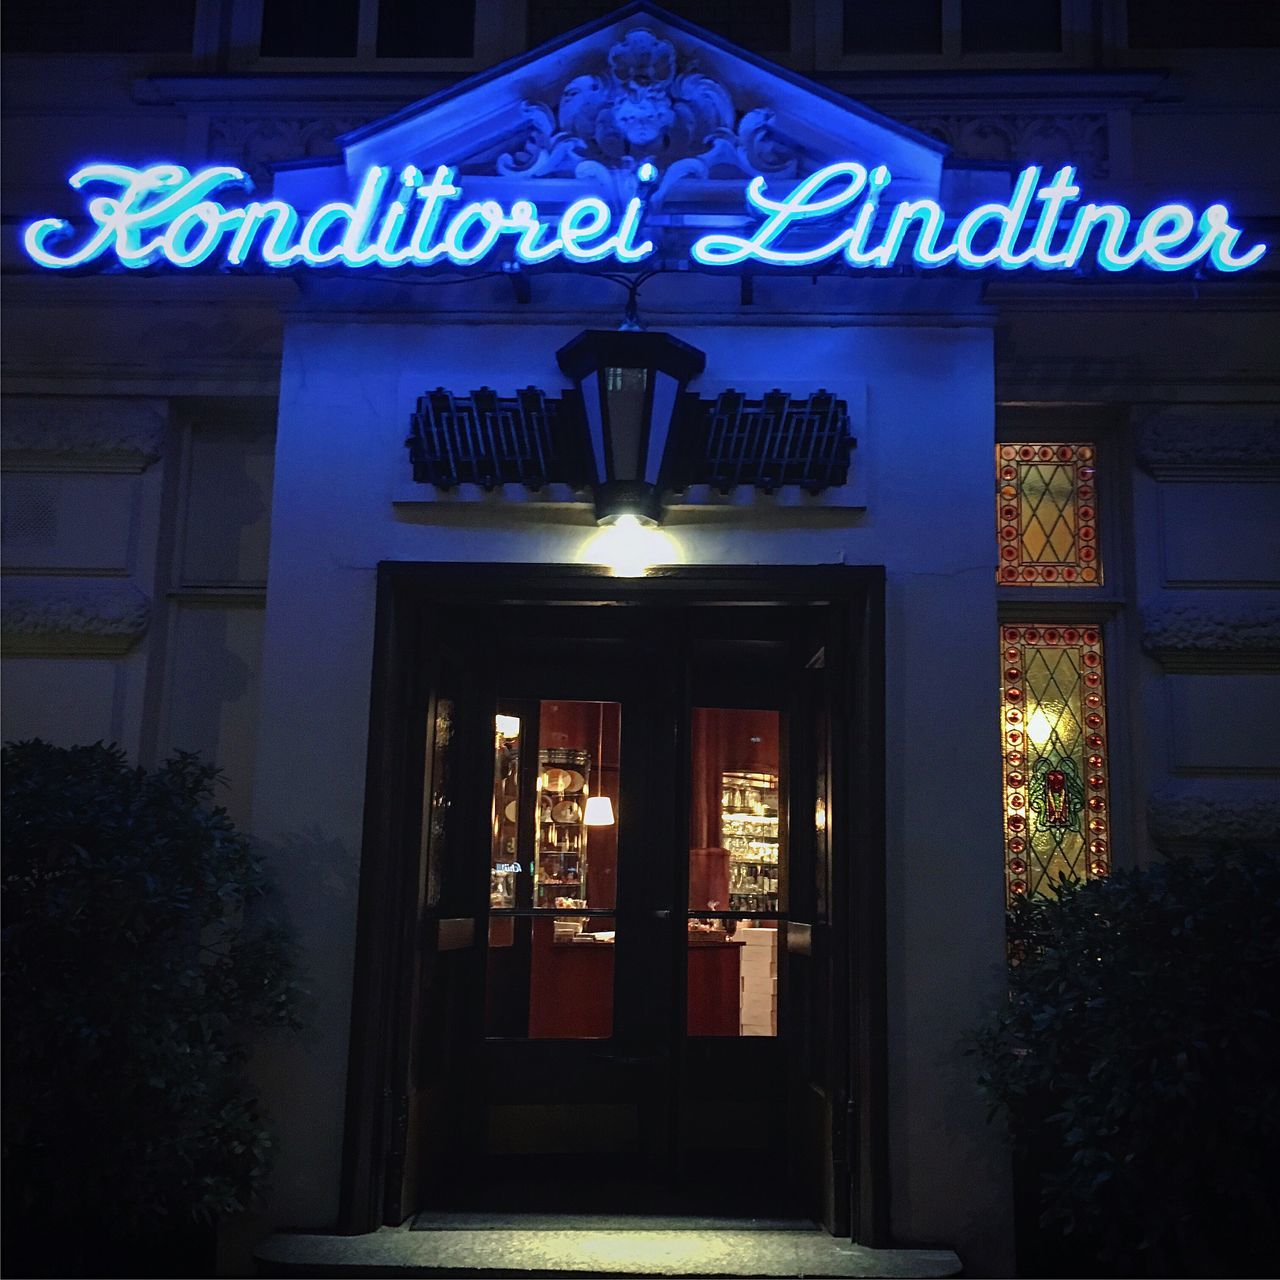 Illuminated Night Architecture Building Exterior Built Structure Blue Entrance Neon Outdoors No People Low Angle View Text Hamburg Konditorei Bluelight Eppendorf Germany